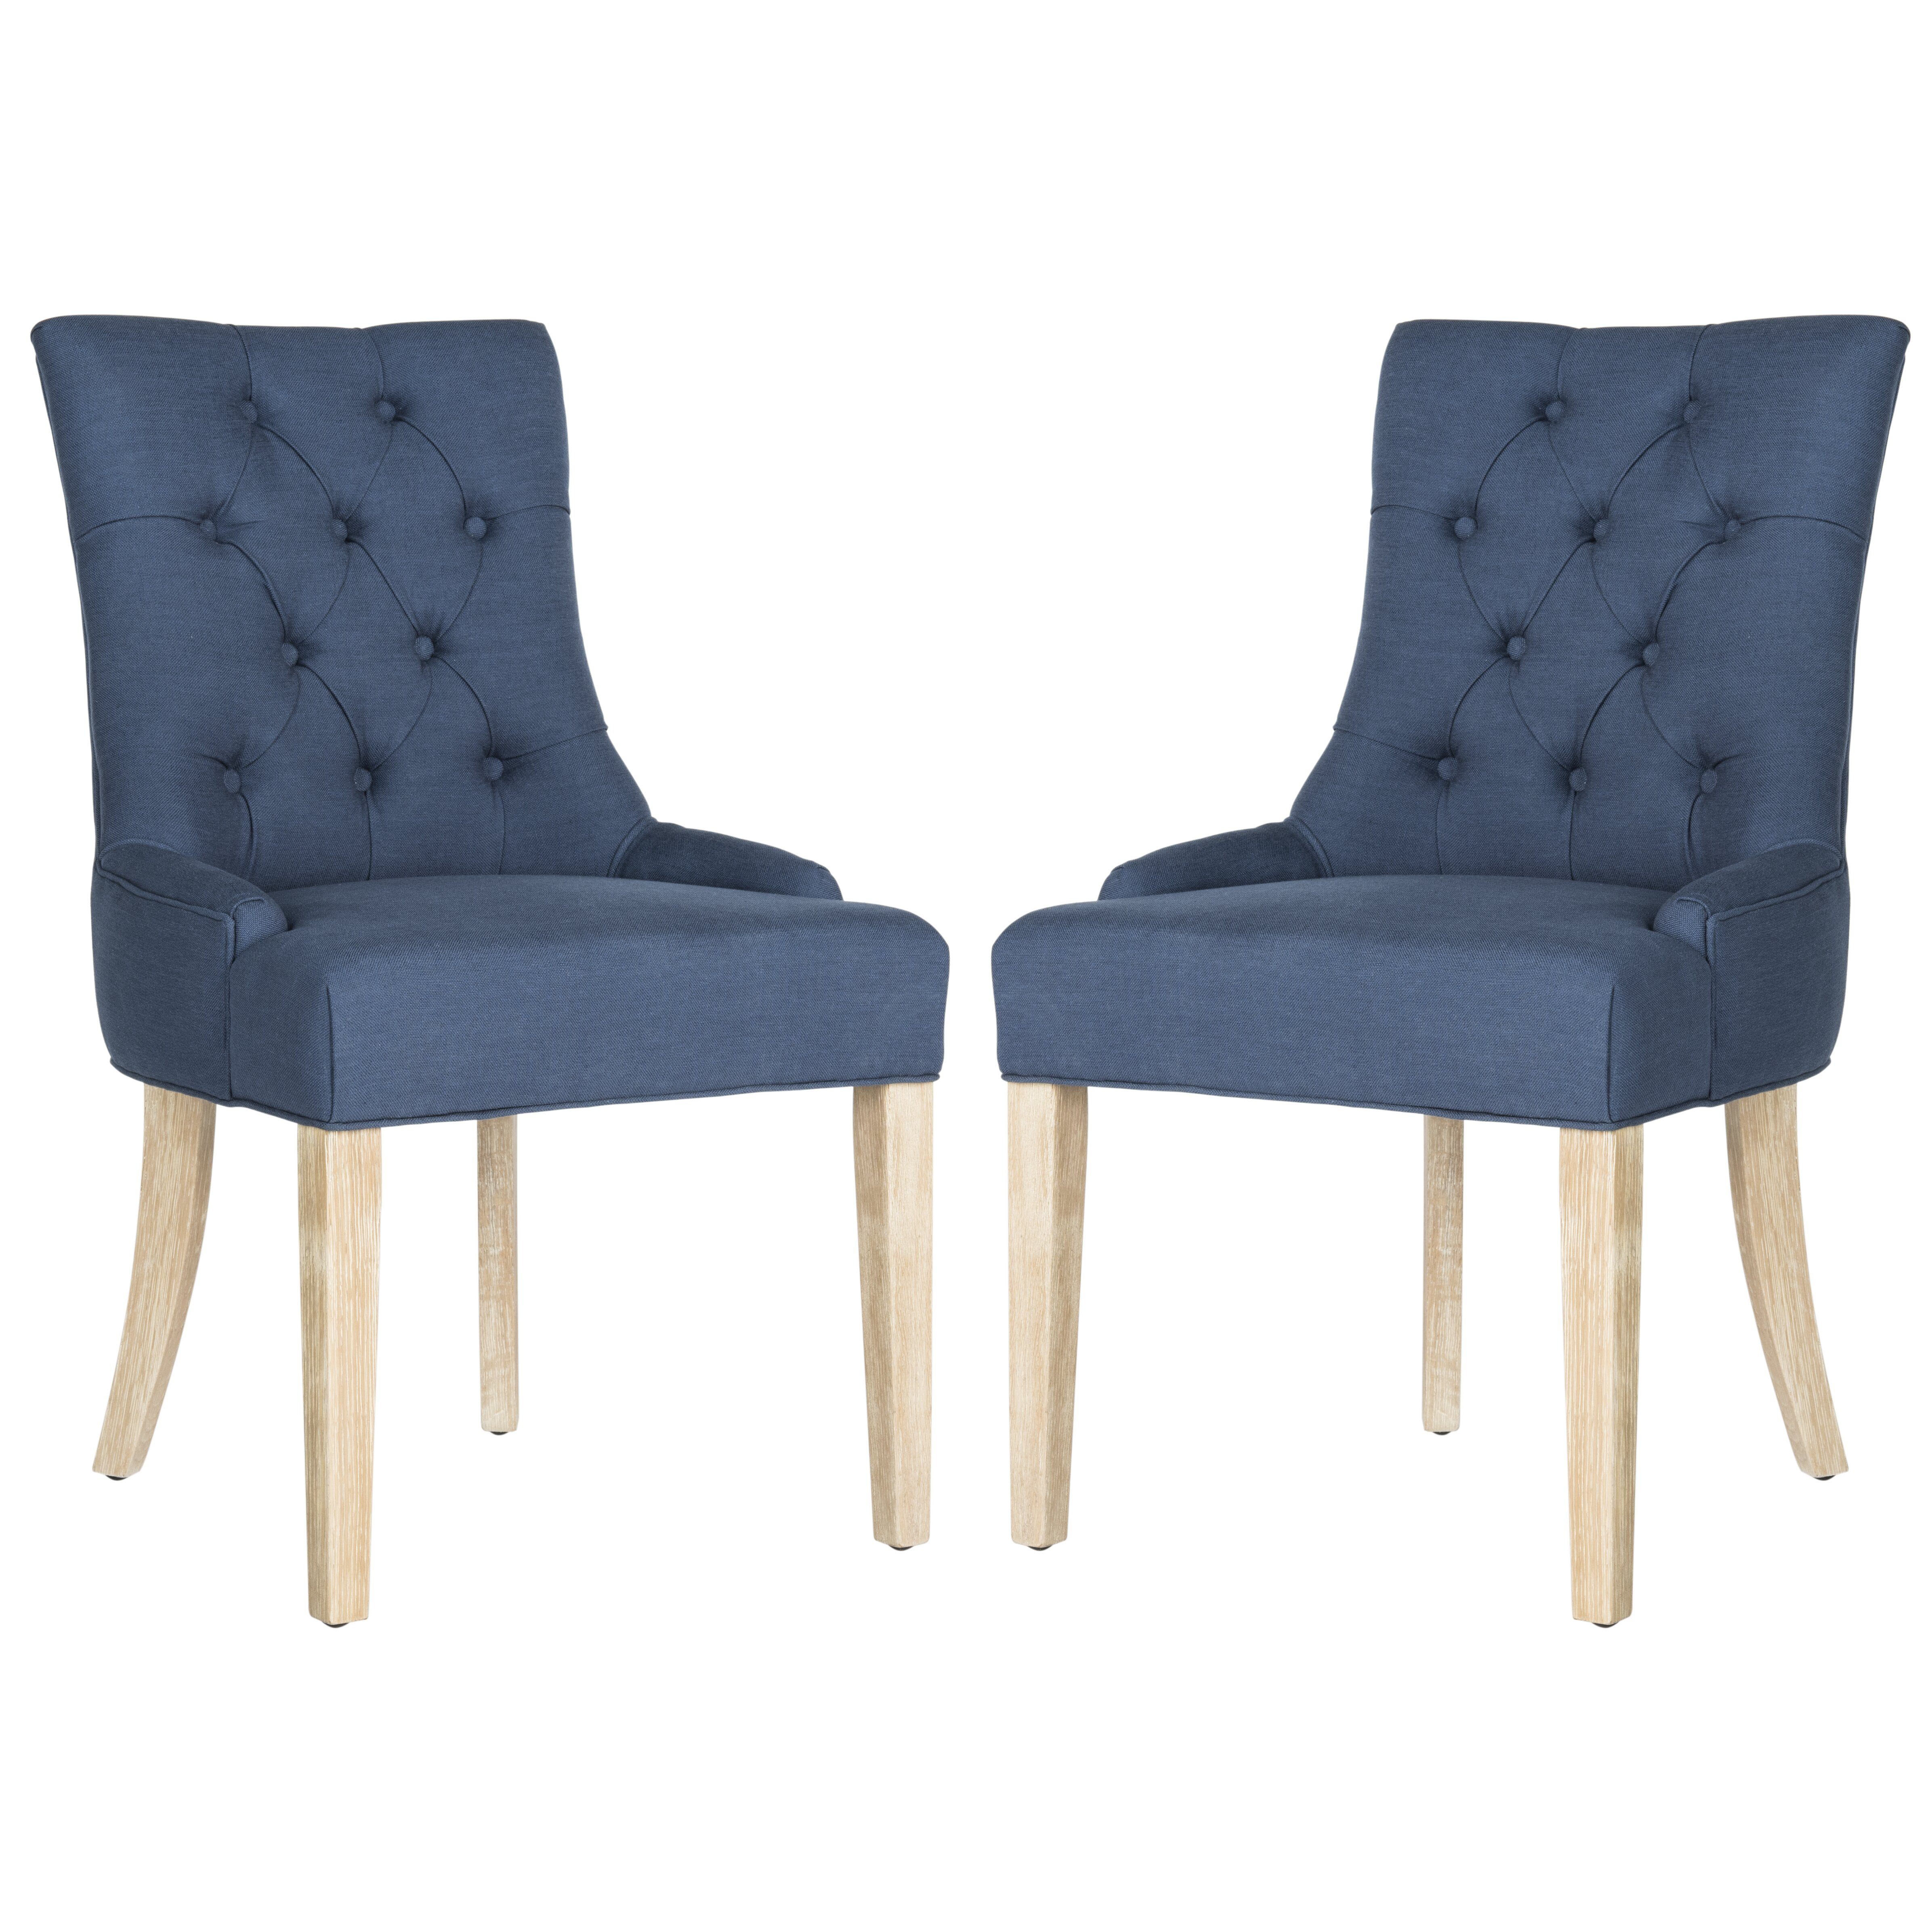 Safavieh Shaw Upholstered Dining Chair & Reviews